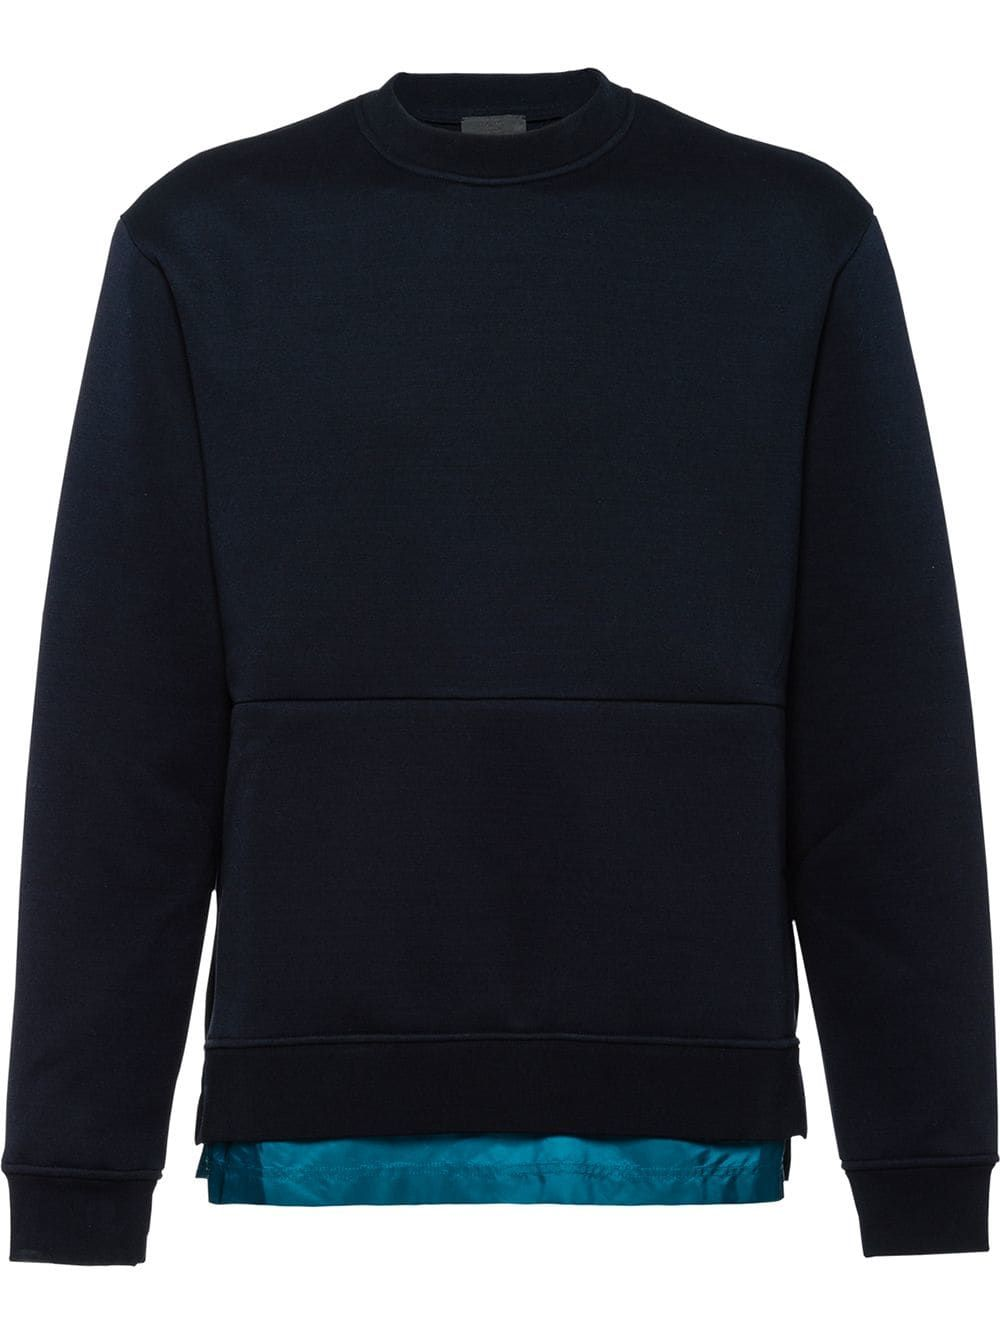 fa2a406b0d PRADA PRADA TECHNICAL COTTON SWEATSHIRT - BLUE. #prada #cloth ...